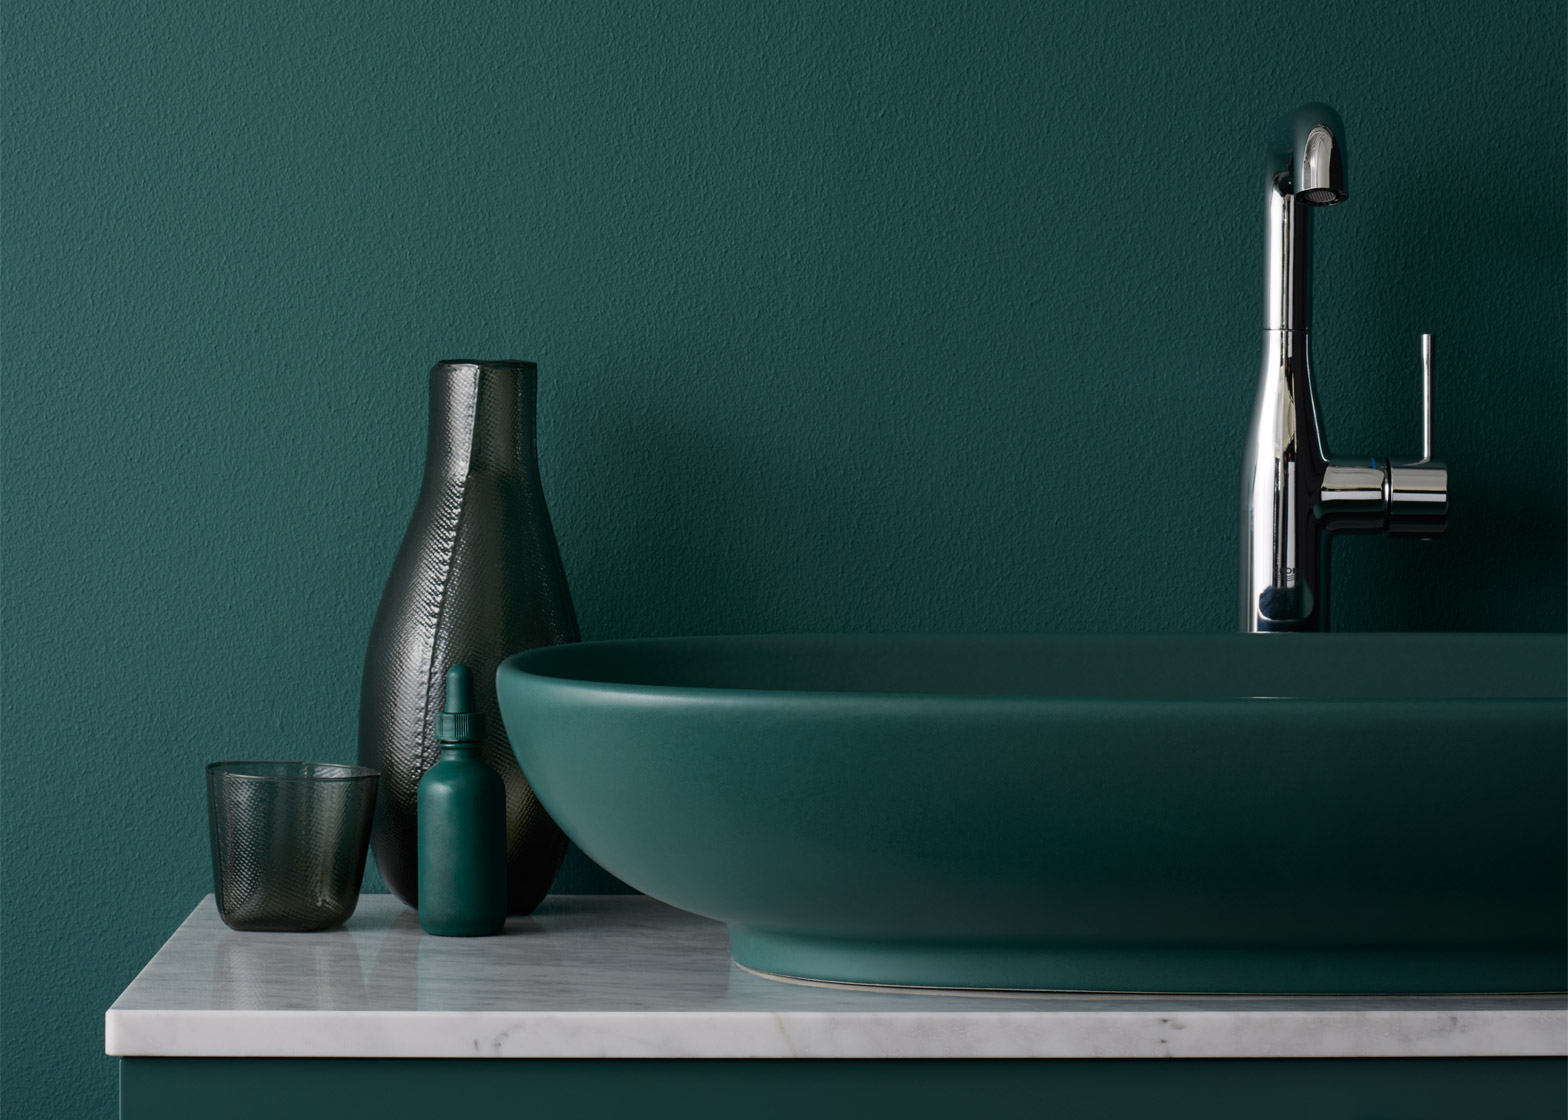 swoon-bathroom-furniture-design-stockholm-personal-style-vanity-unit-mirror-basin_dezeen_1568_2